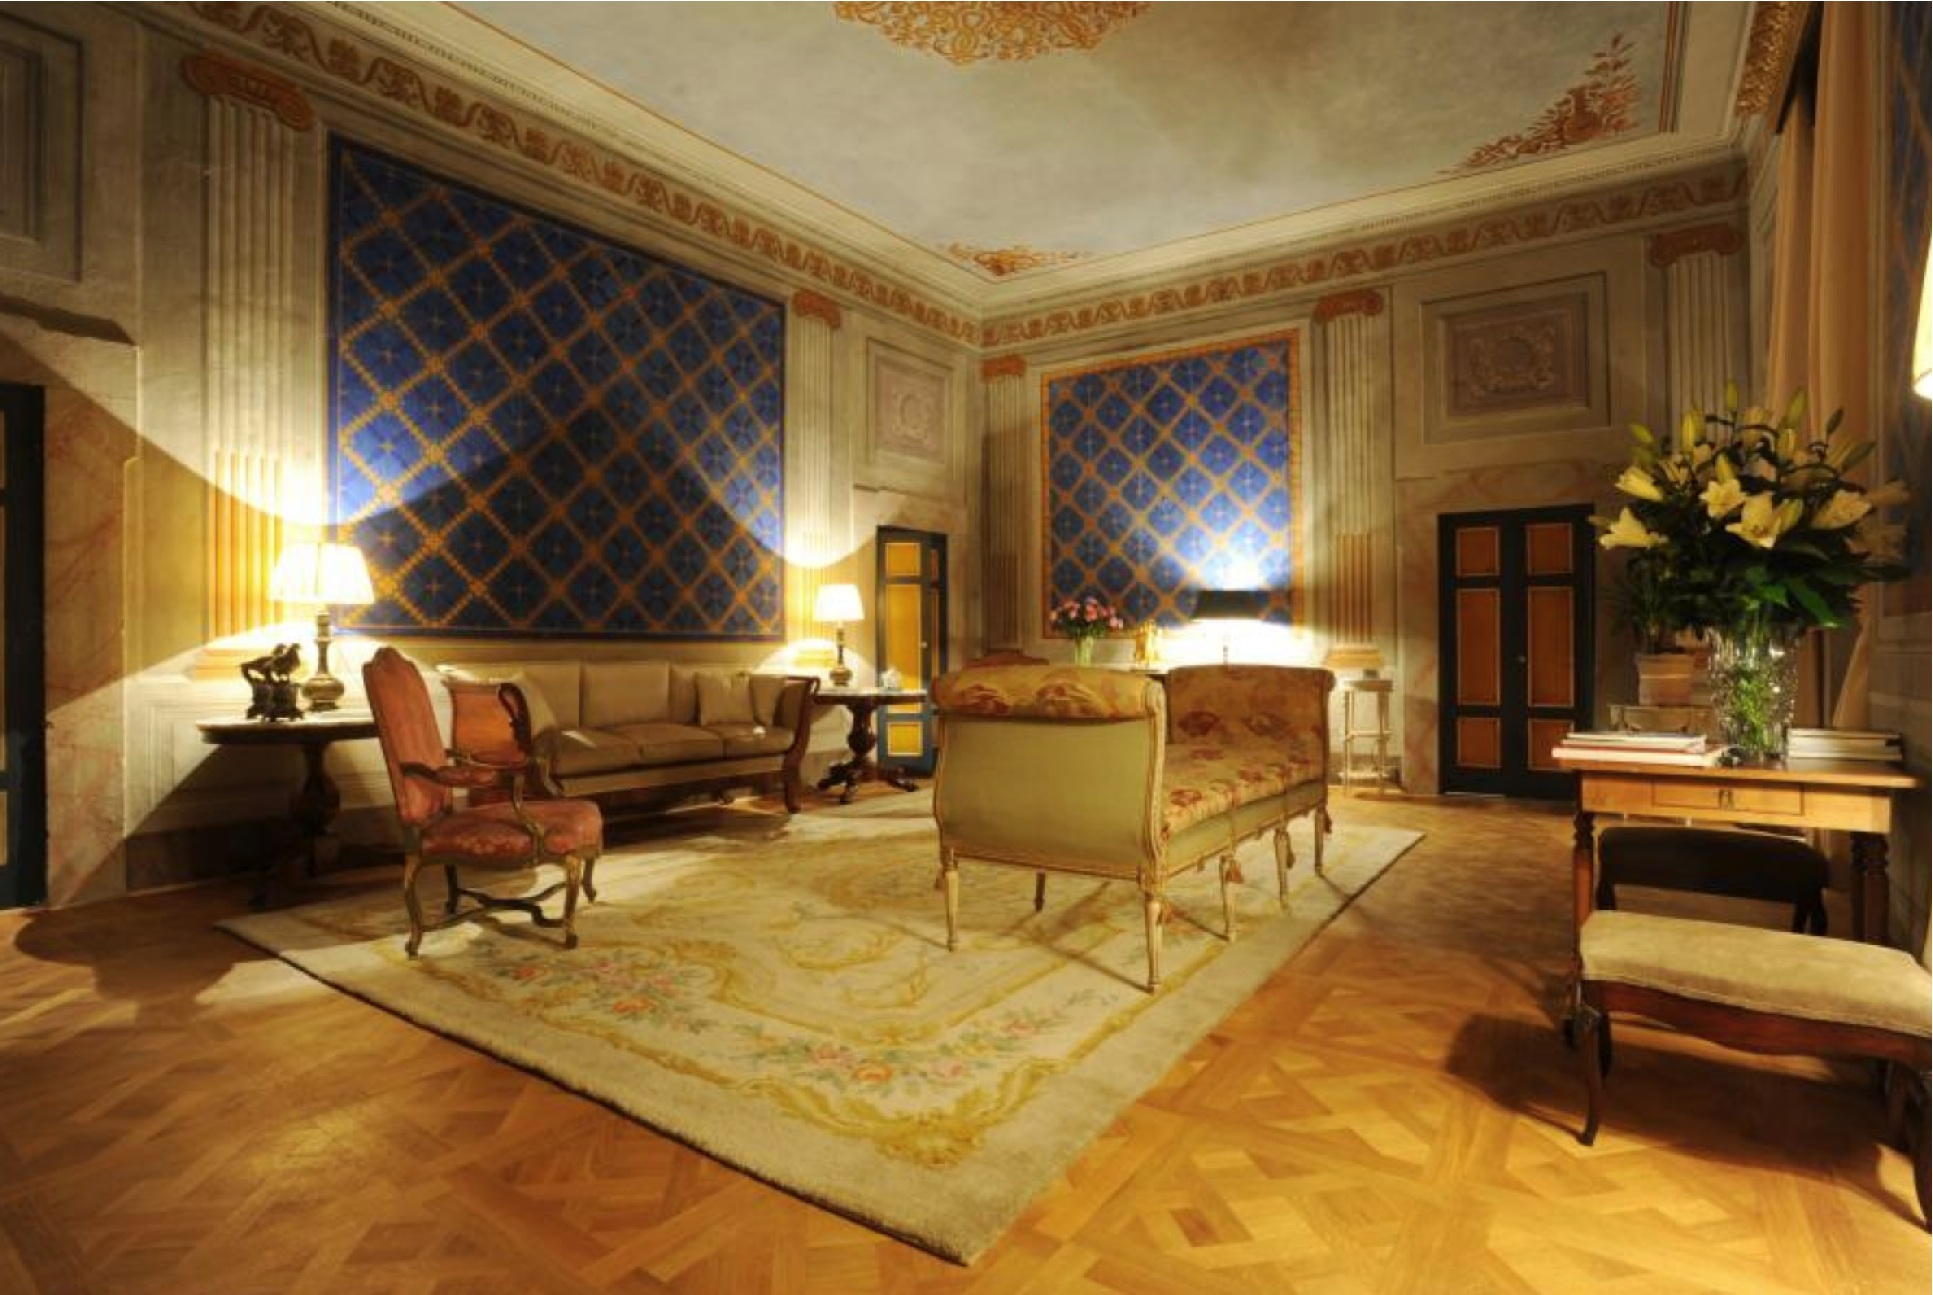 B&B - Palazzo Lucca in Tuscany